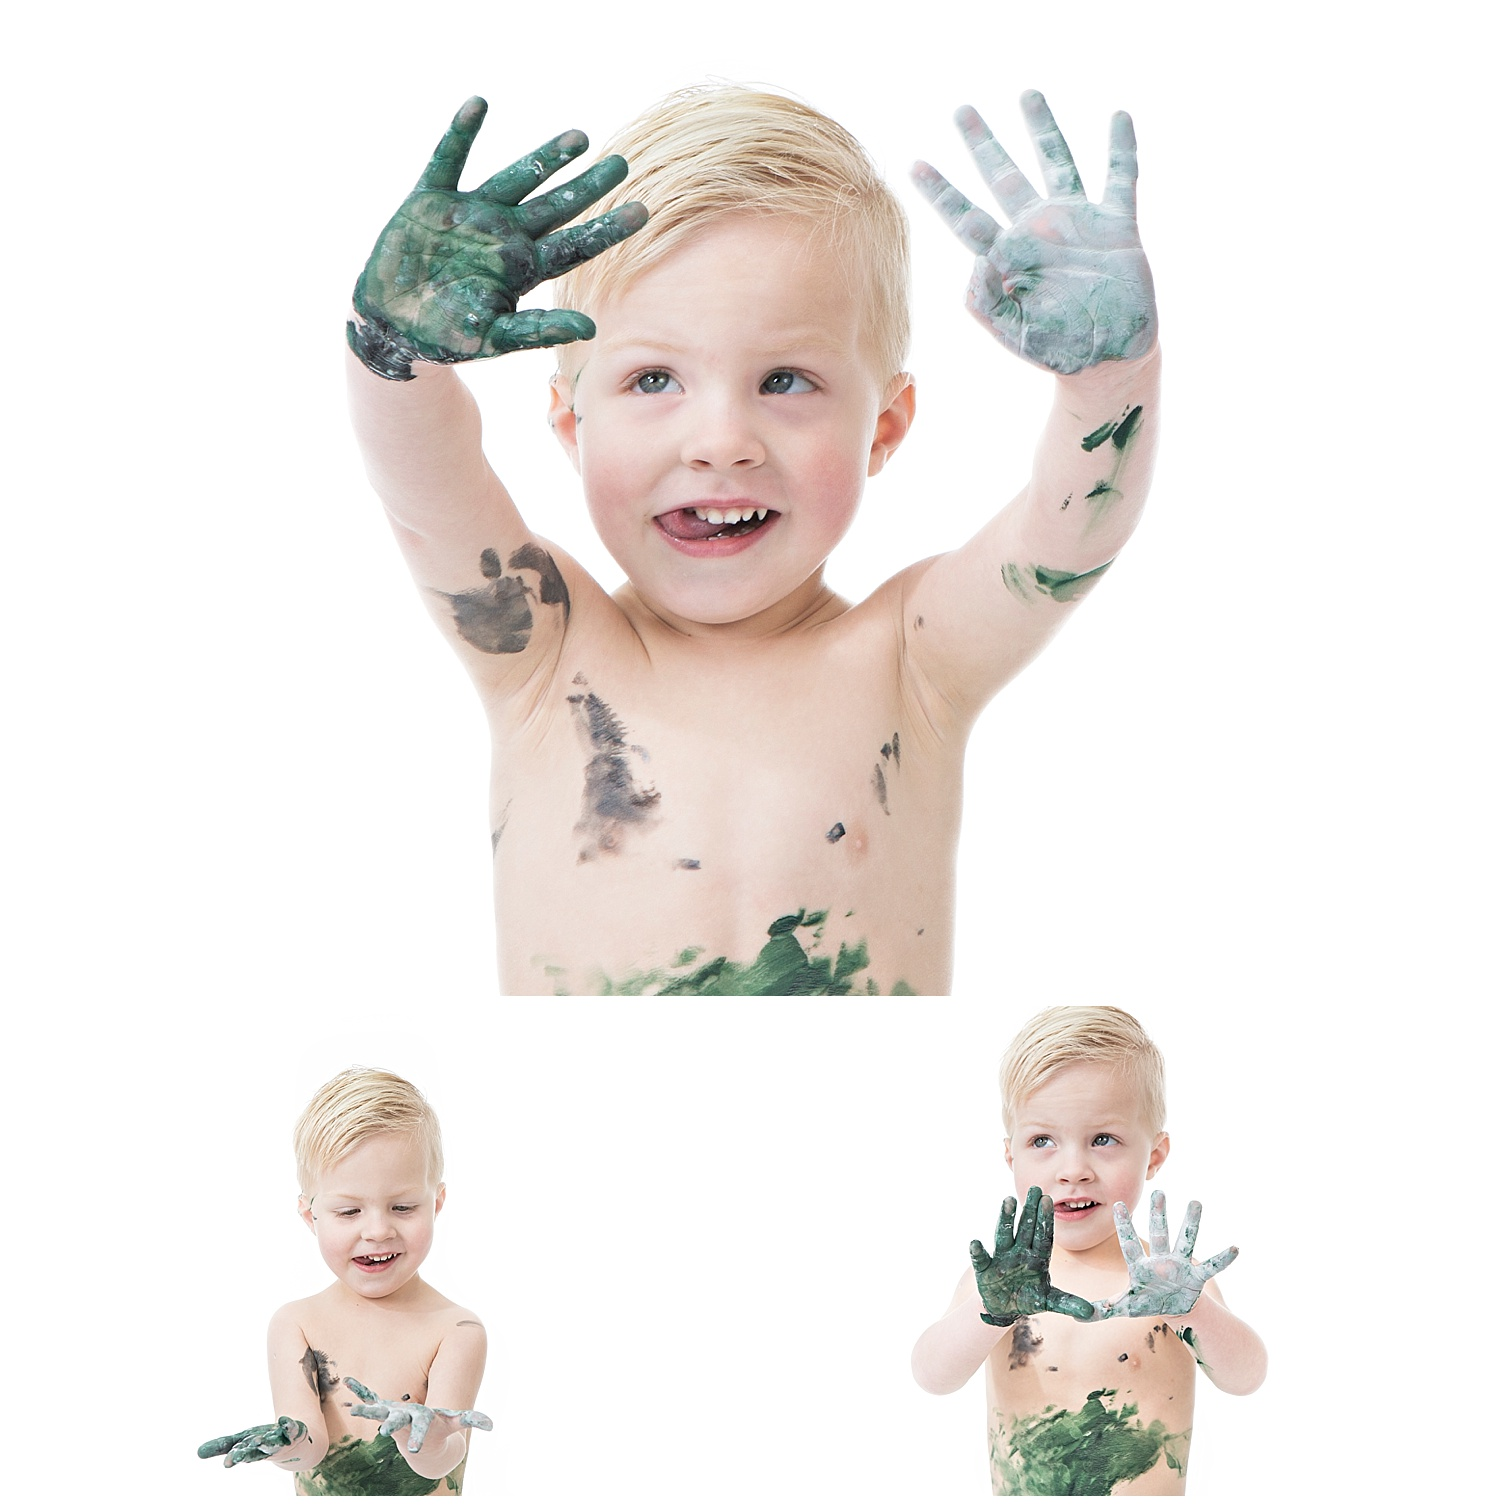 Andrea-Burolla-Photography-Denver-Childrens-photographer-kids-paint-session-little-boy-happy-hands-handprints-paint-green-grey